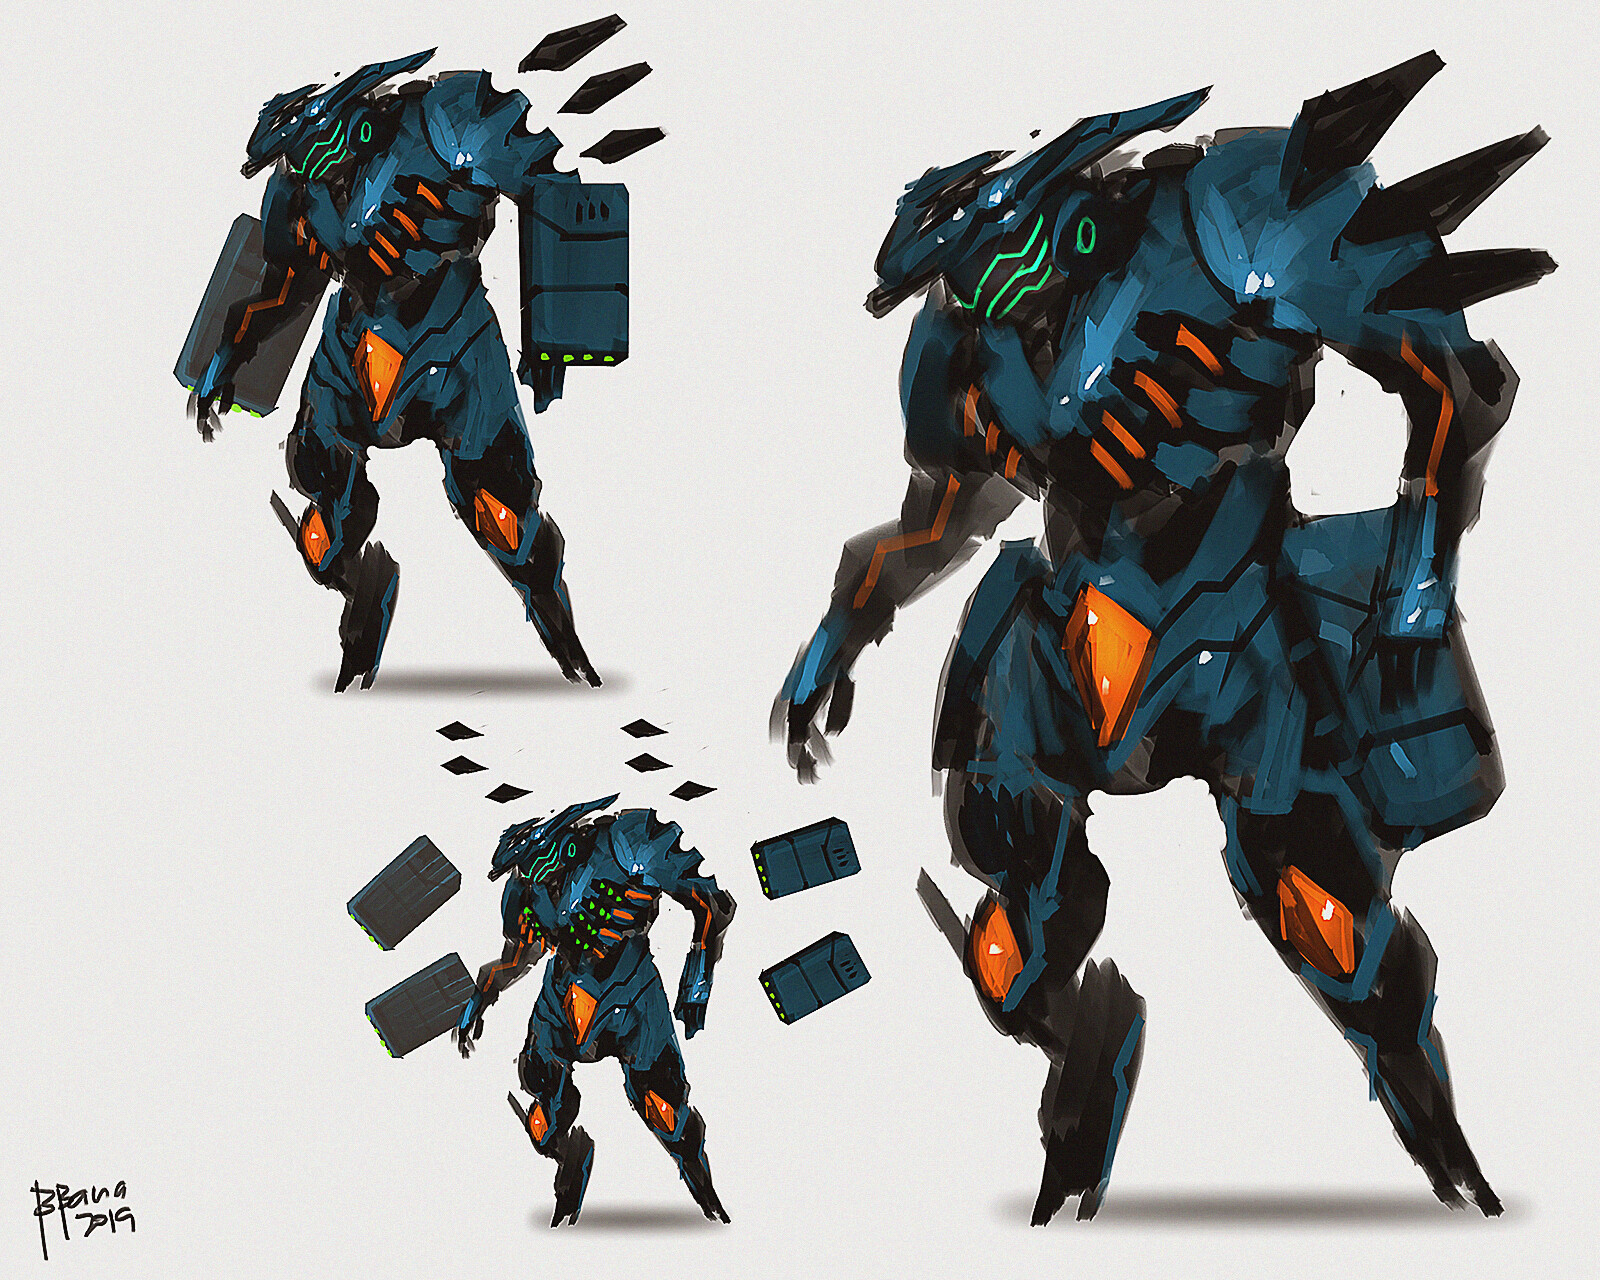 concept art. equipped with pairs of missile pods, anti-missile system, shoulder spike beams, chest missile barrage.